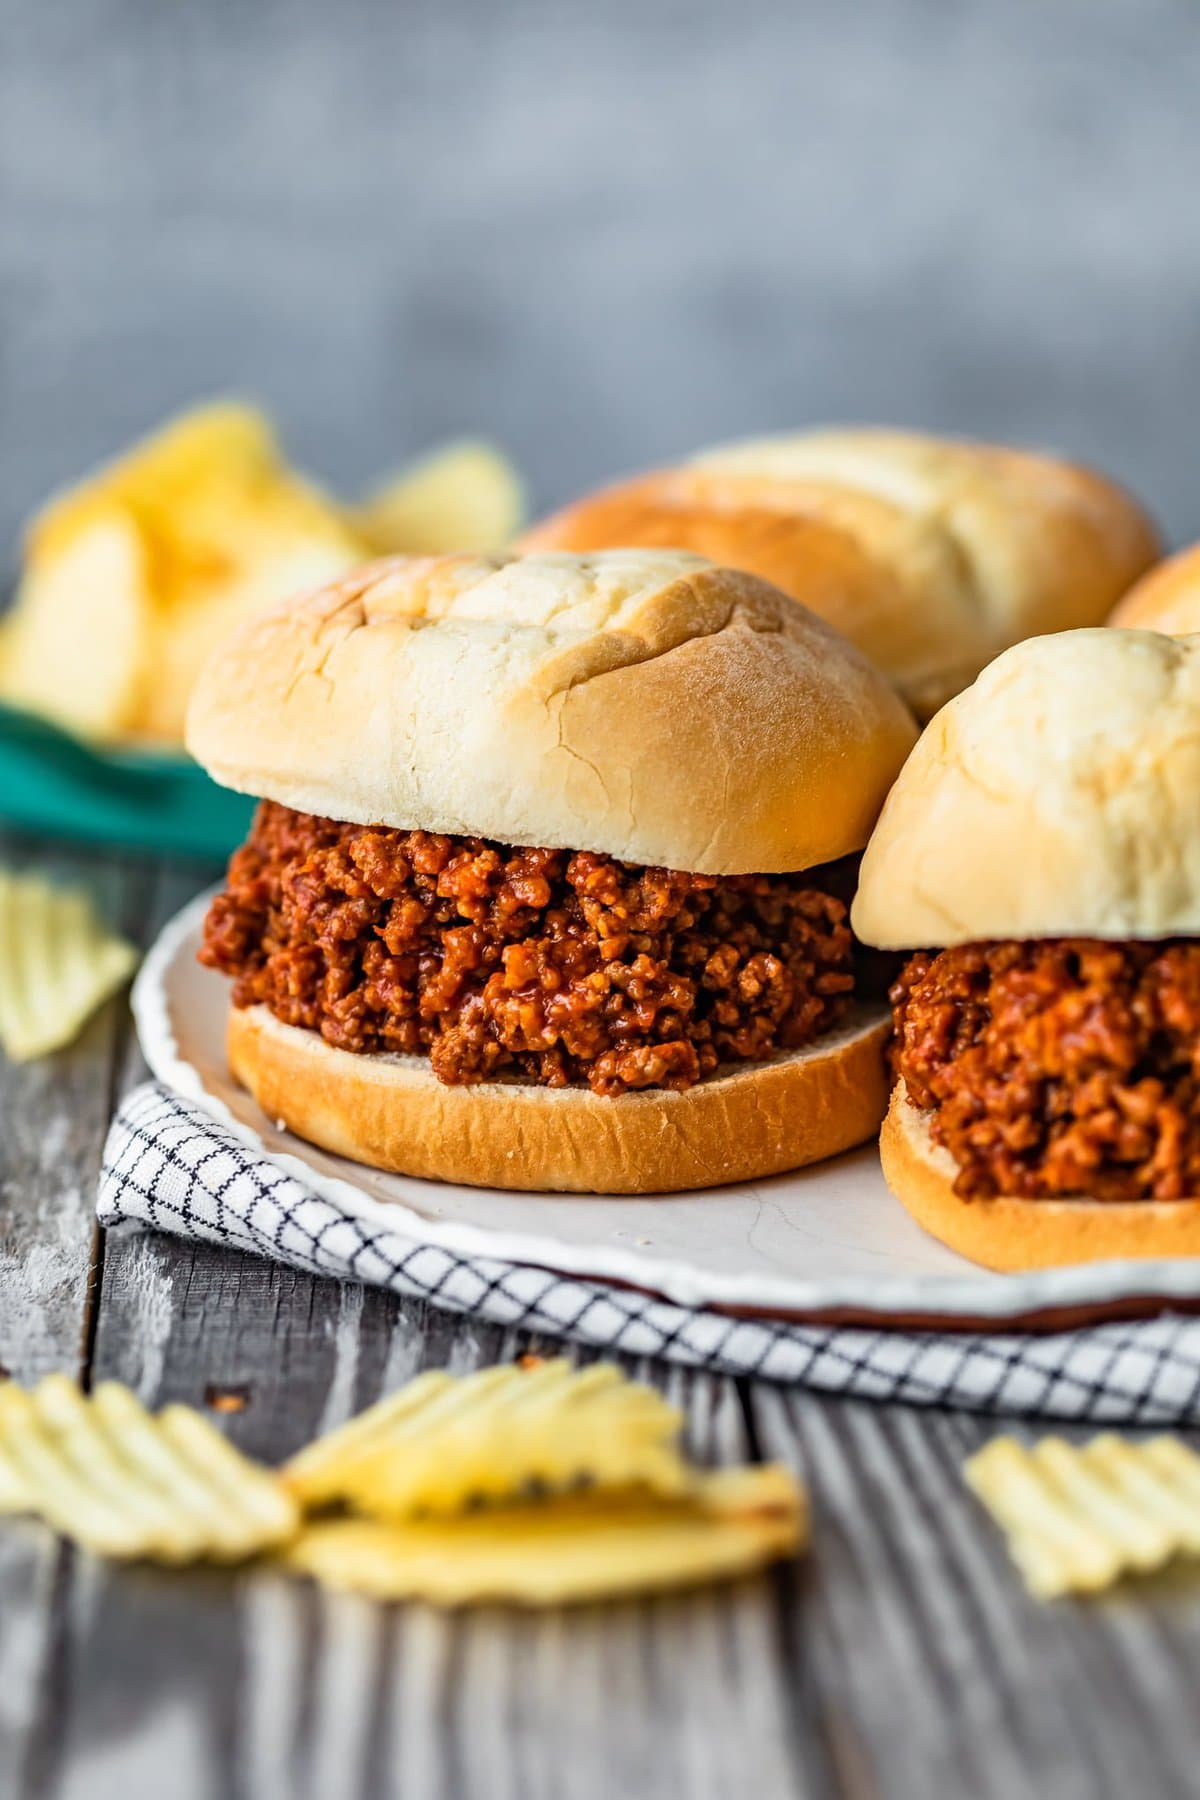 a plate of sloppy joes set on a table